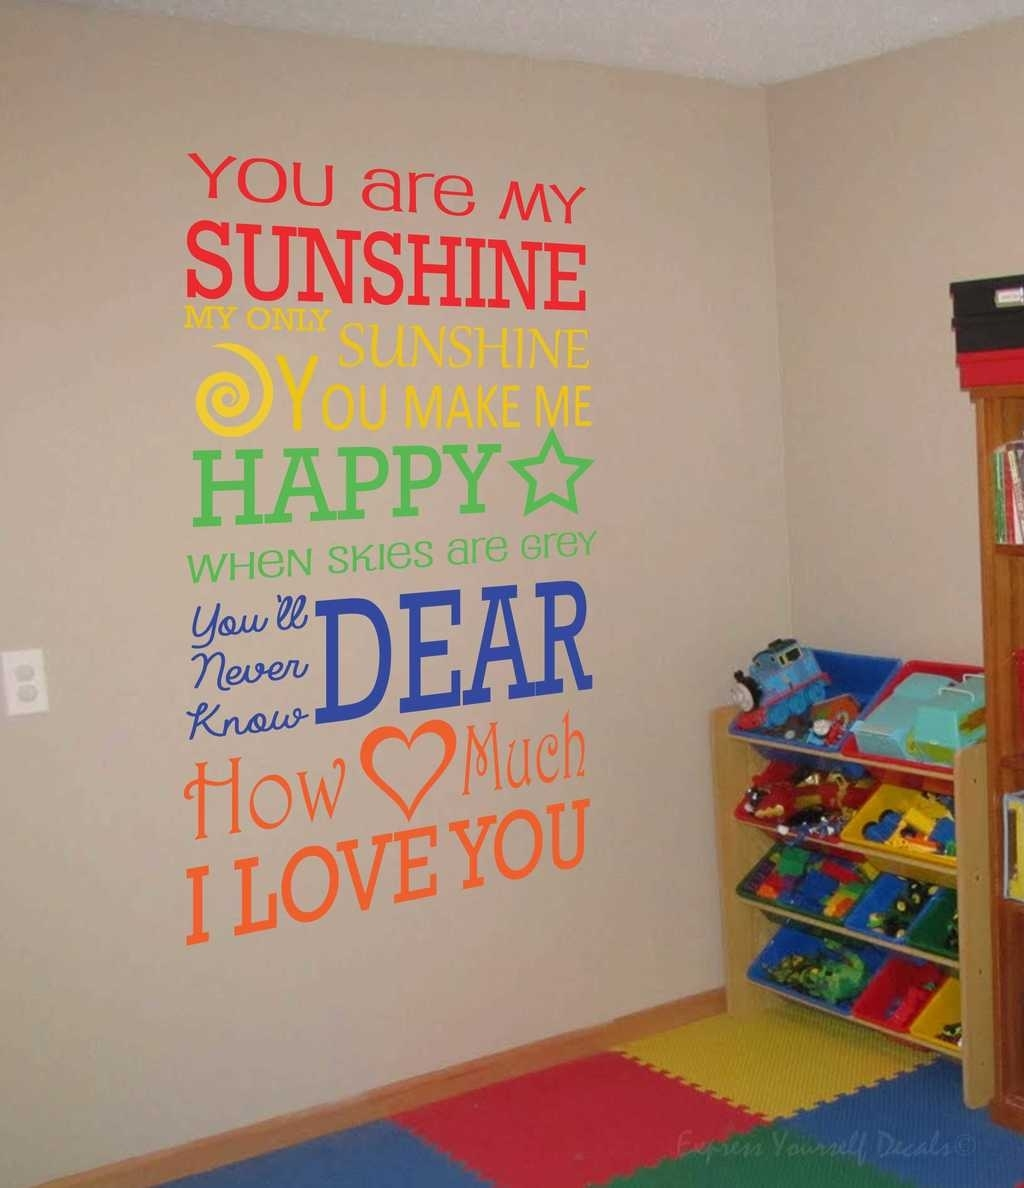 Express Love With Our Love Based Wall Decals Intended For 2018 You Are My Sunshine Wall Art (View 15 of 15)